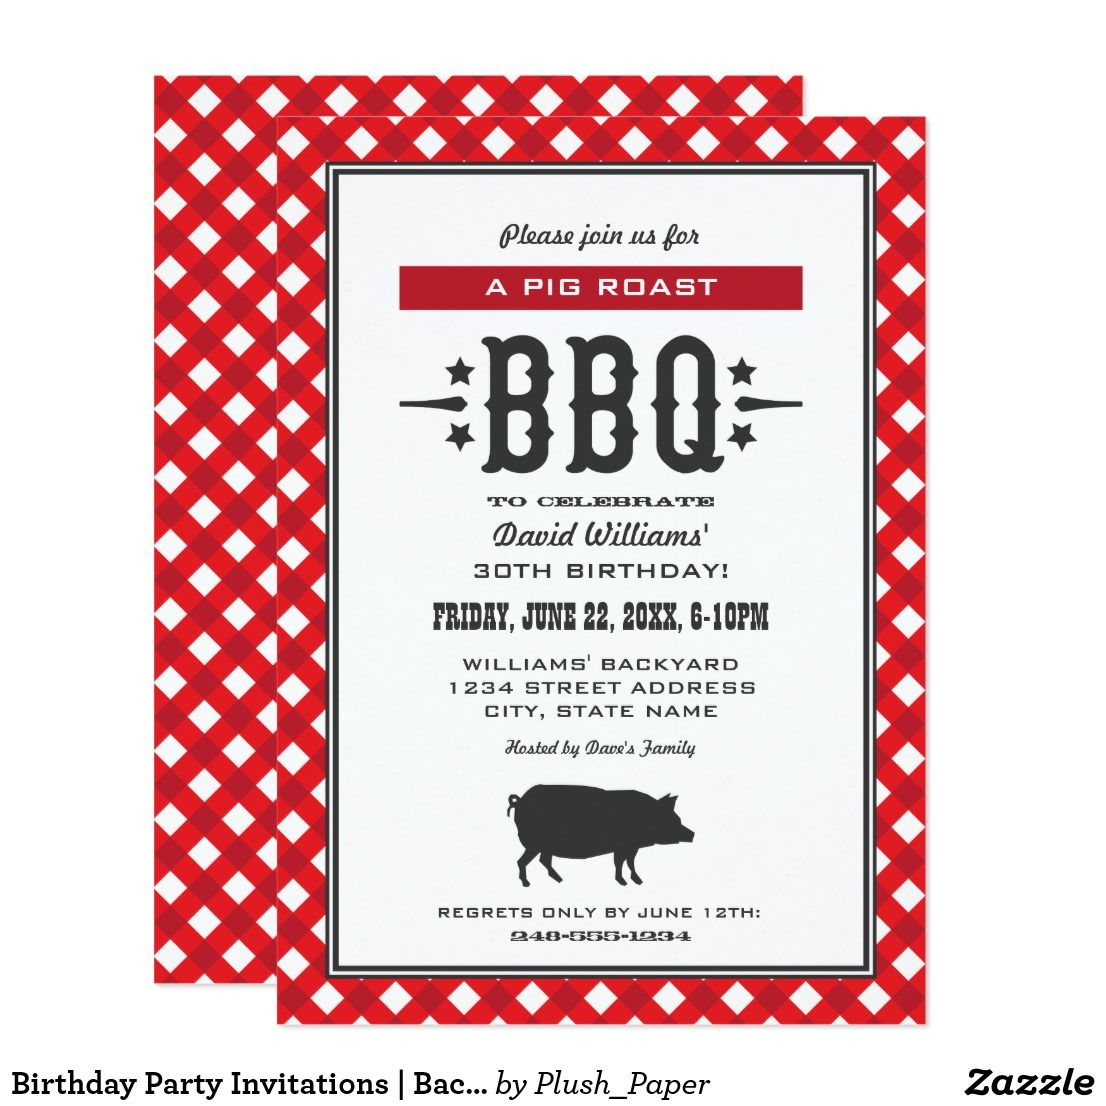 Birthday Party Invitations | Backyard BBQ Theme | Party invitations ...